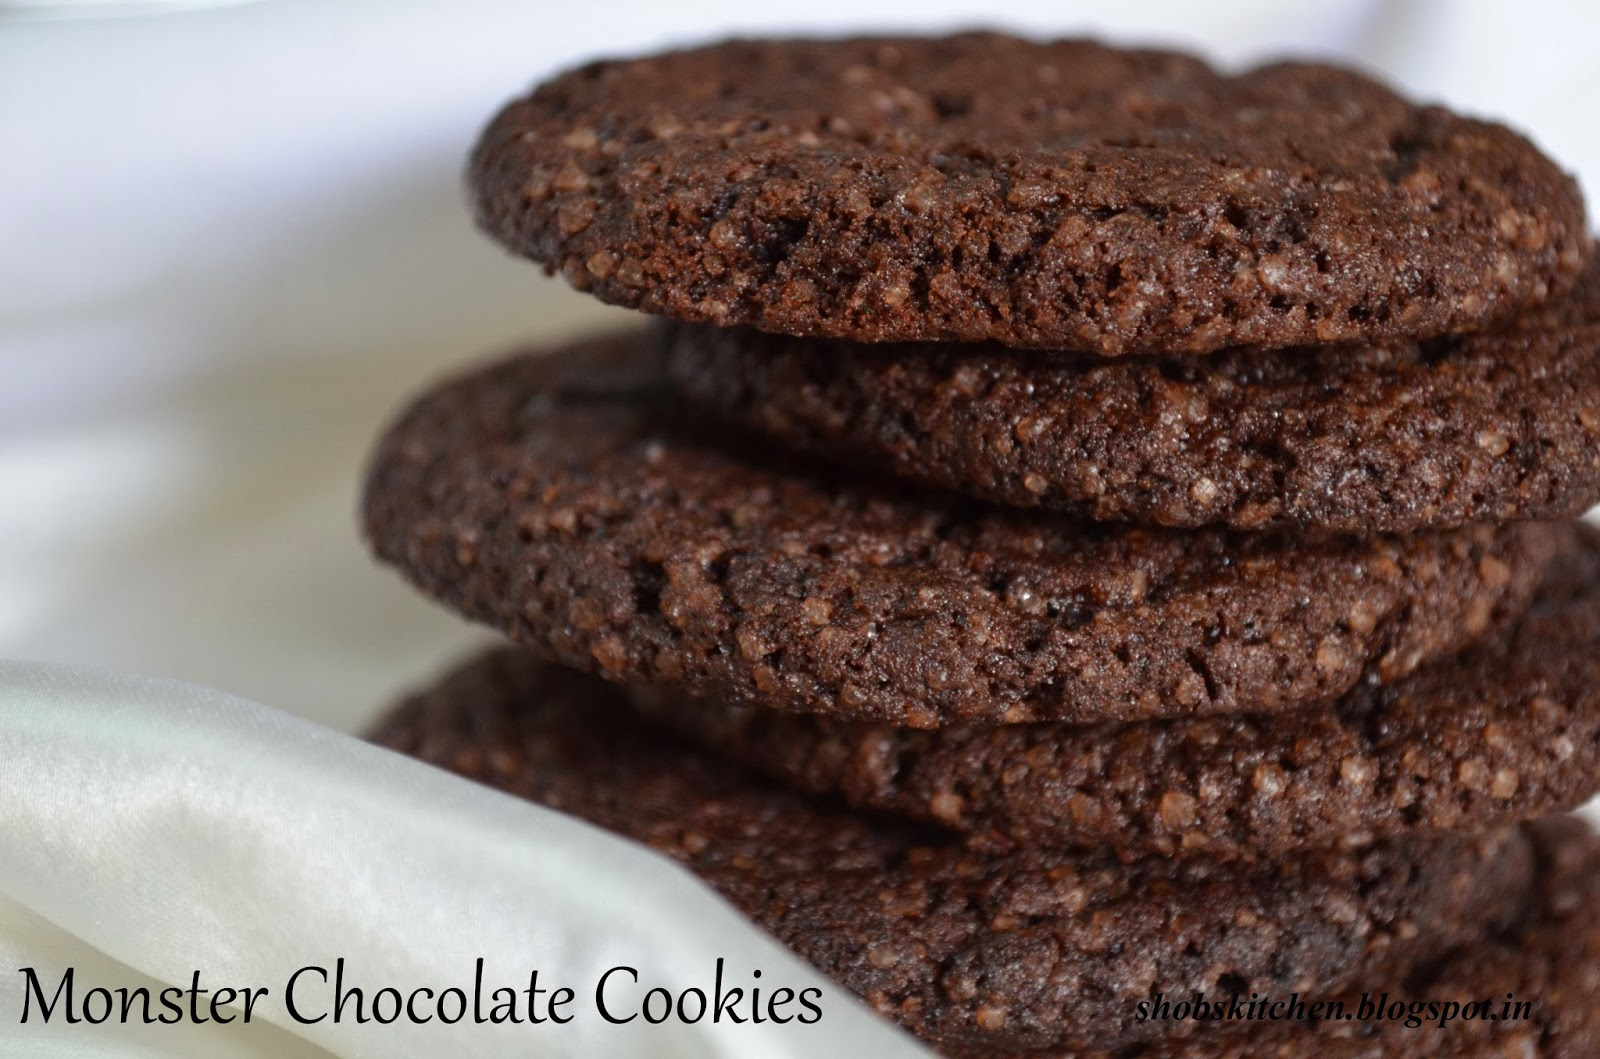 ShobsKitchen: Monster Chocolate Cookies